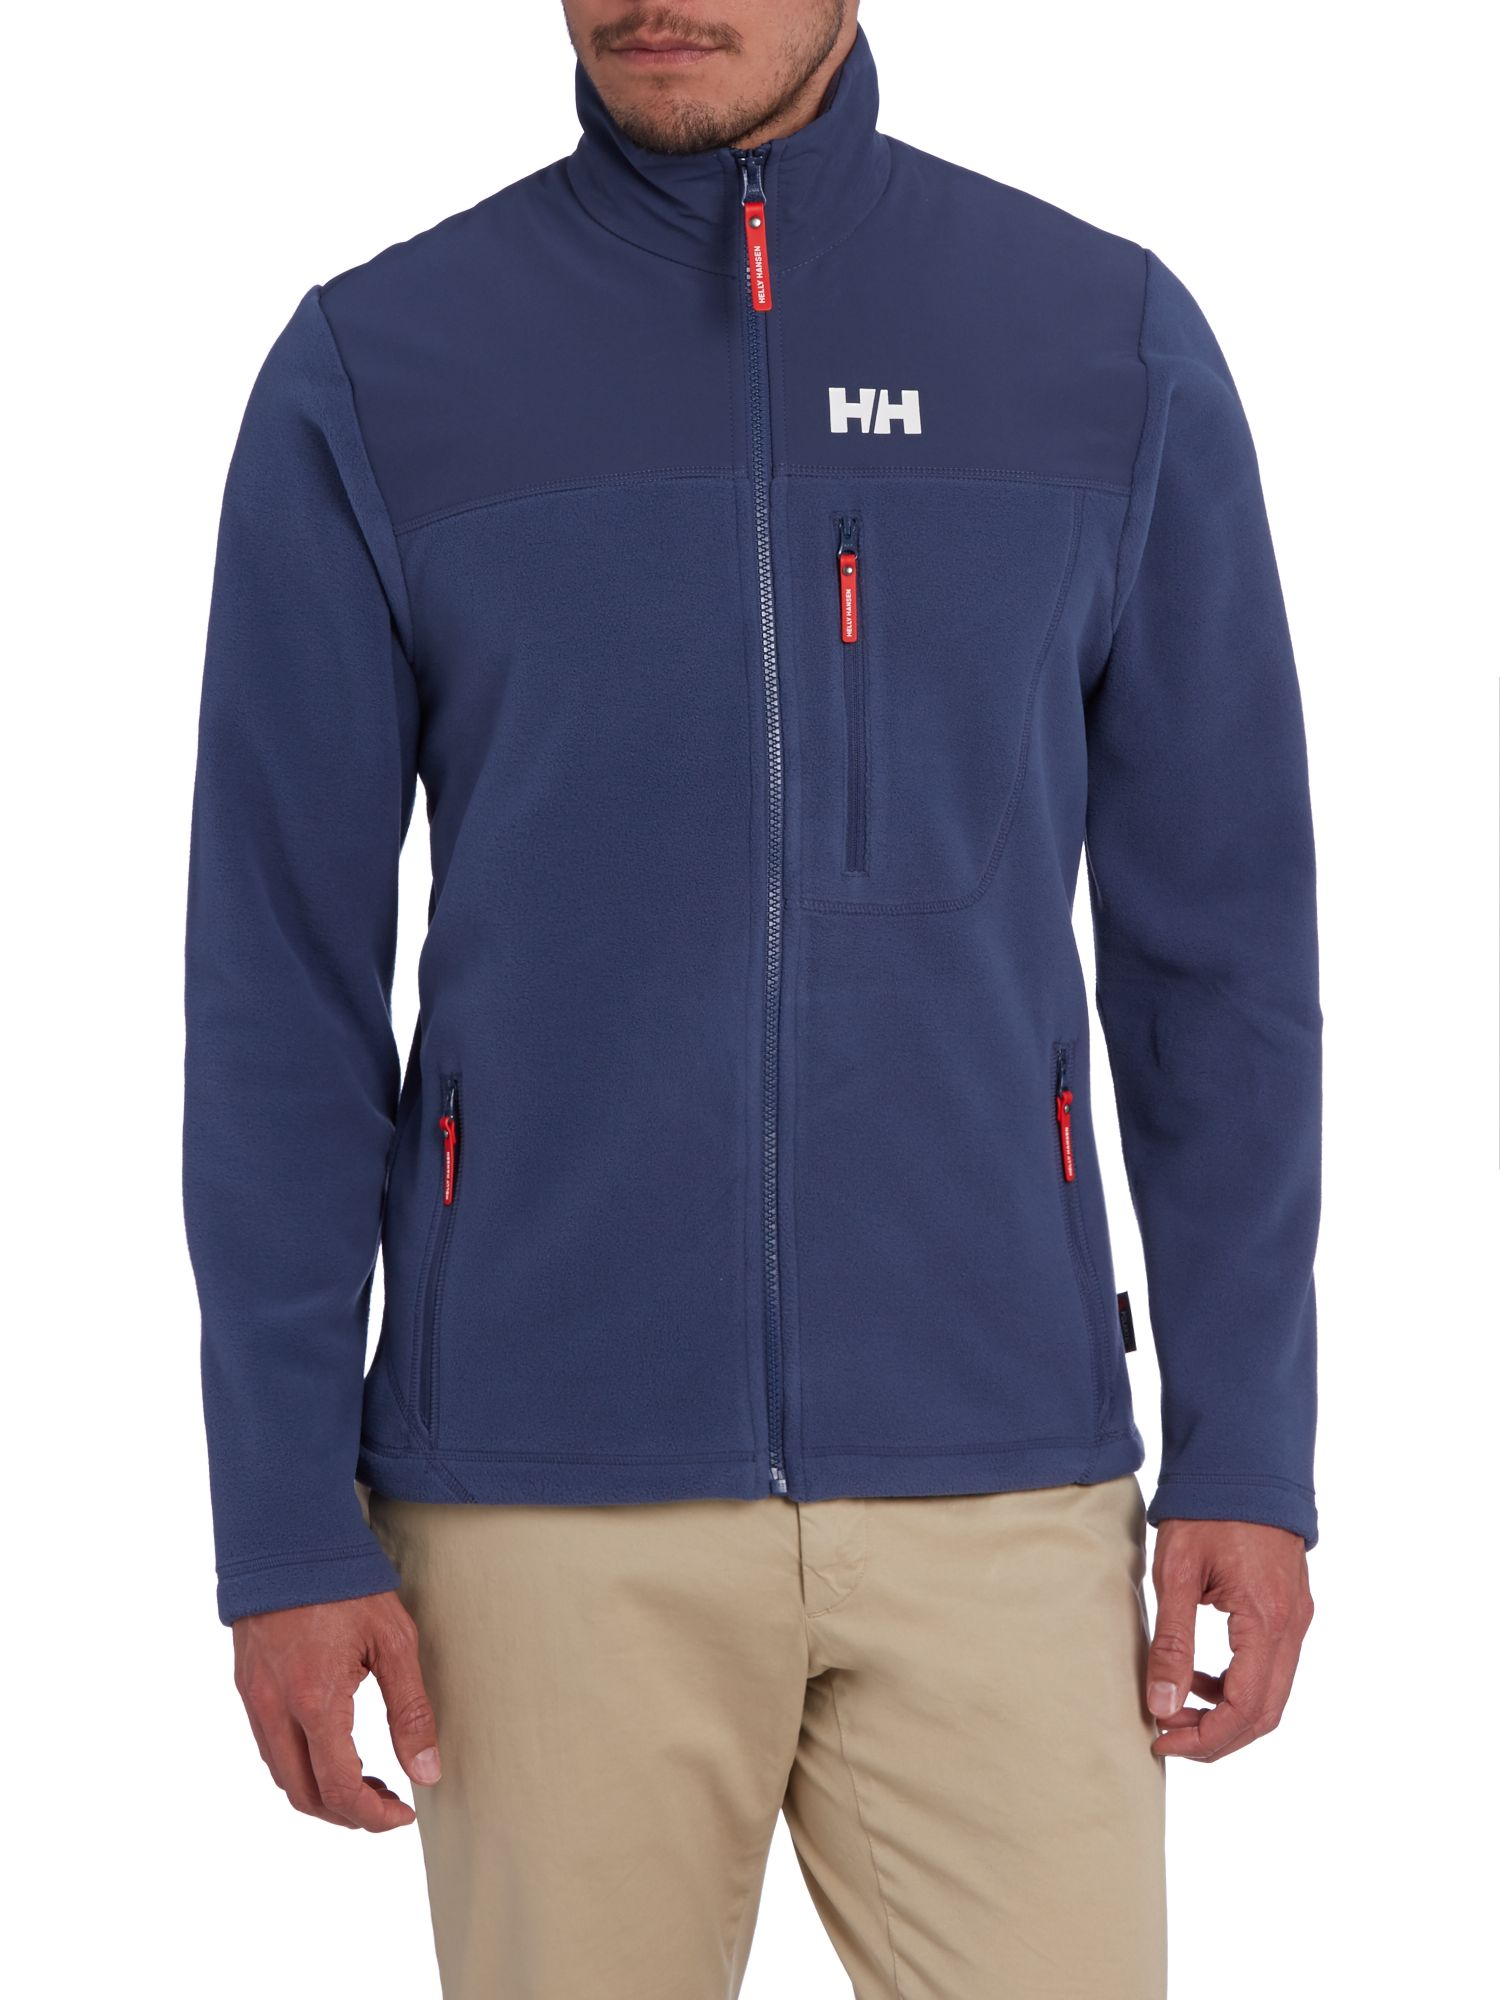 Sitka fleece jacket